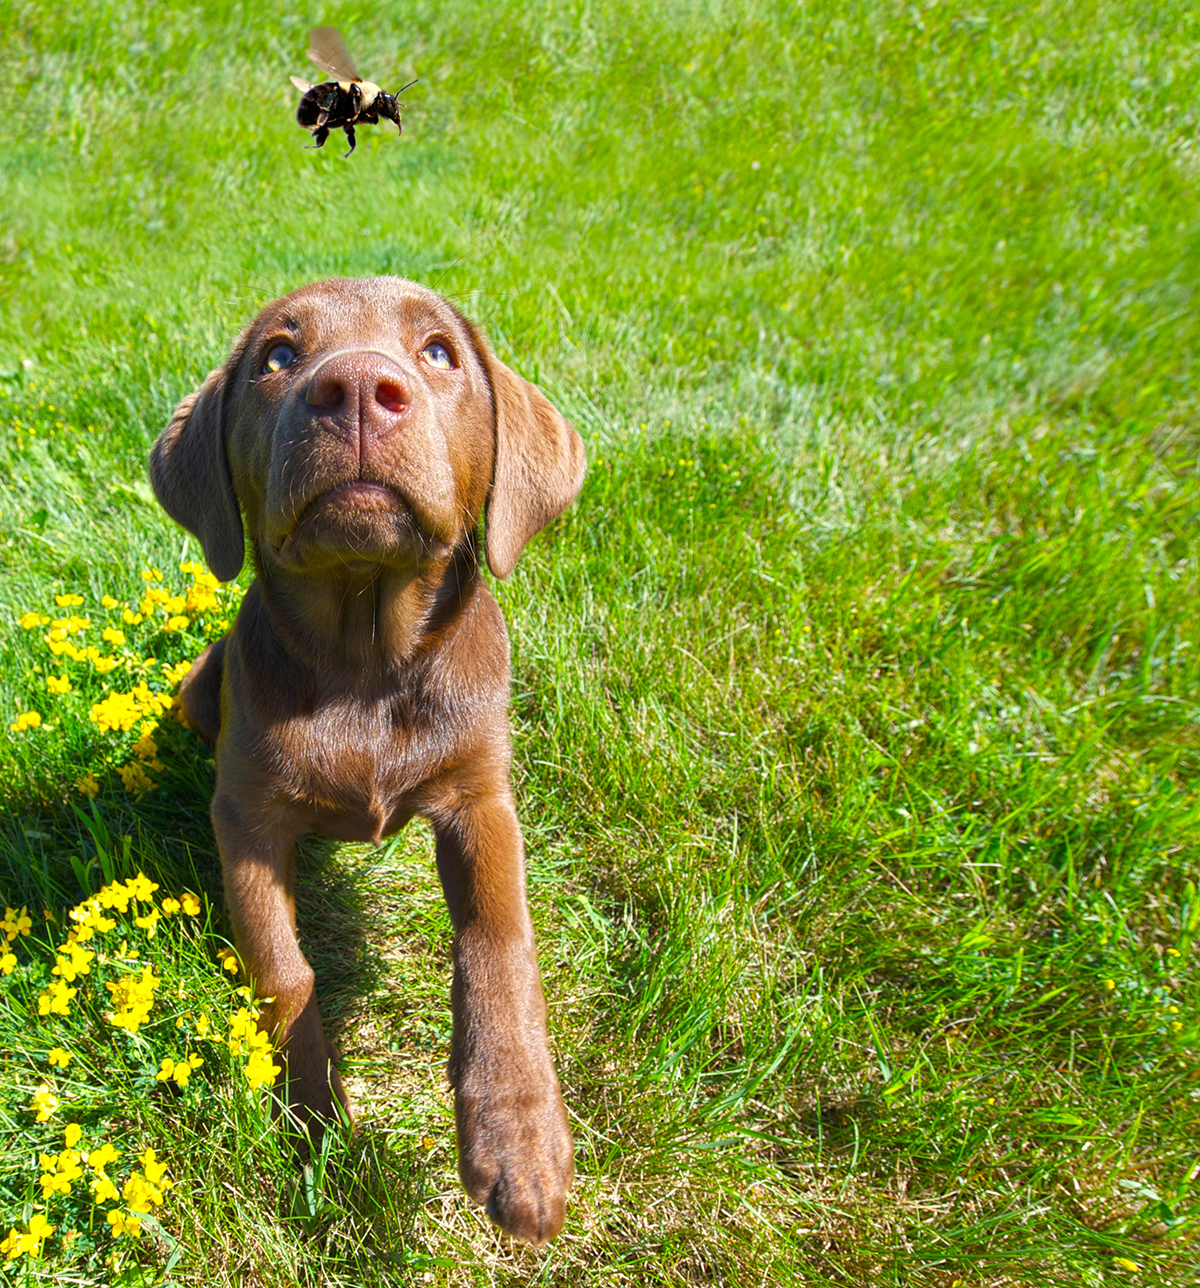 Dogs & Bees: How to Handle a Sting